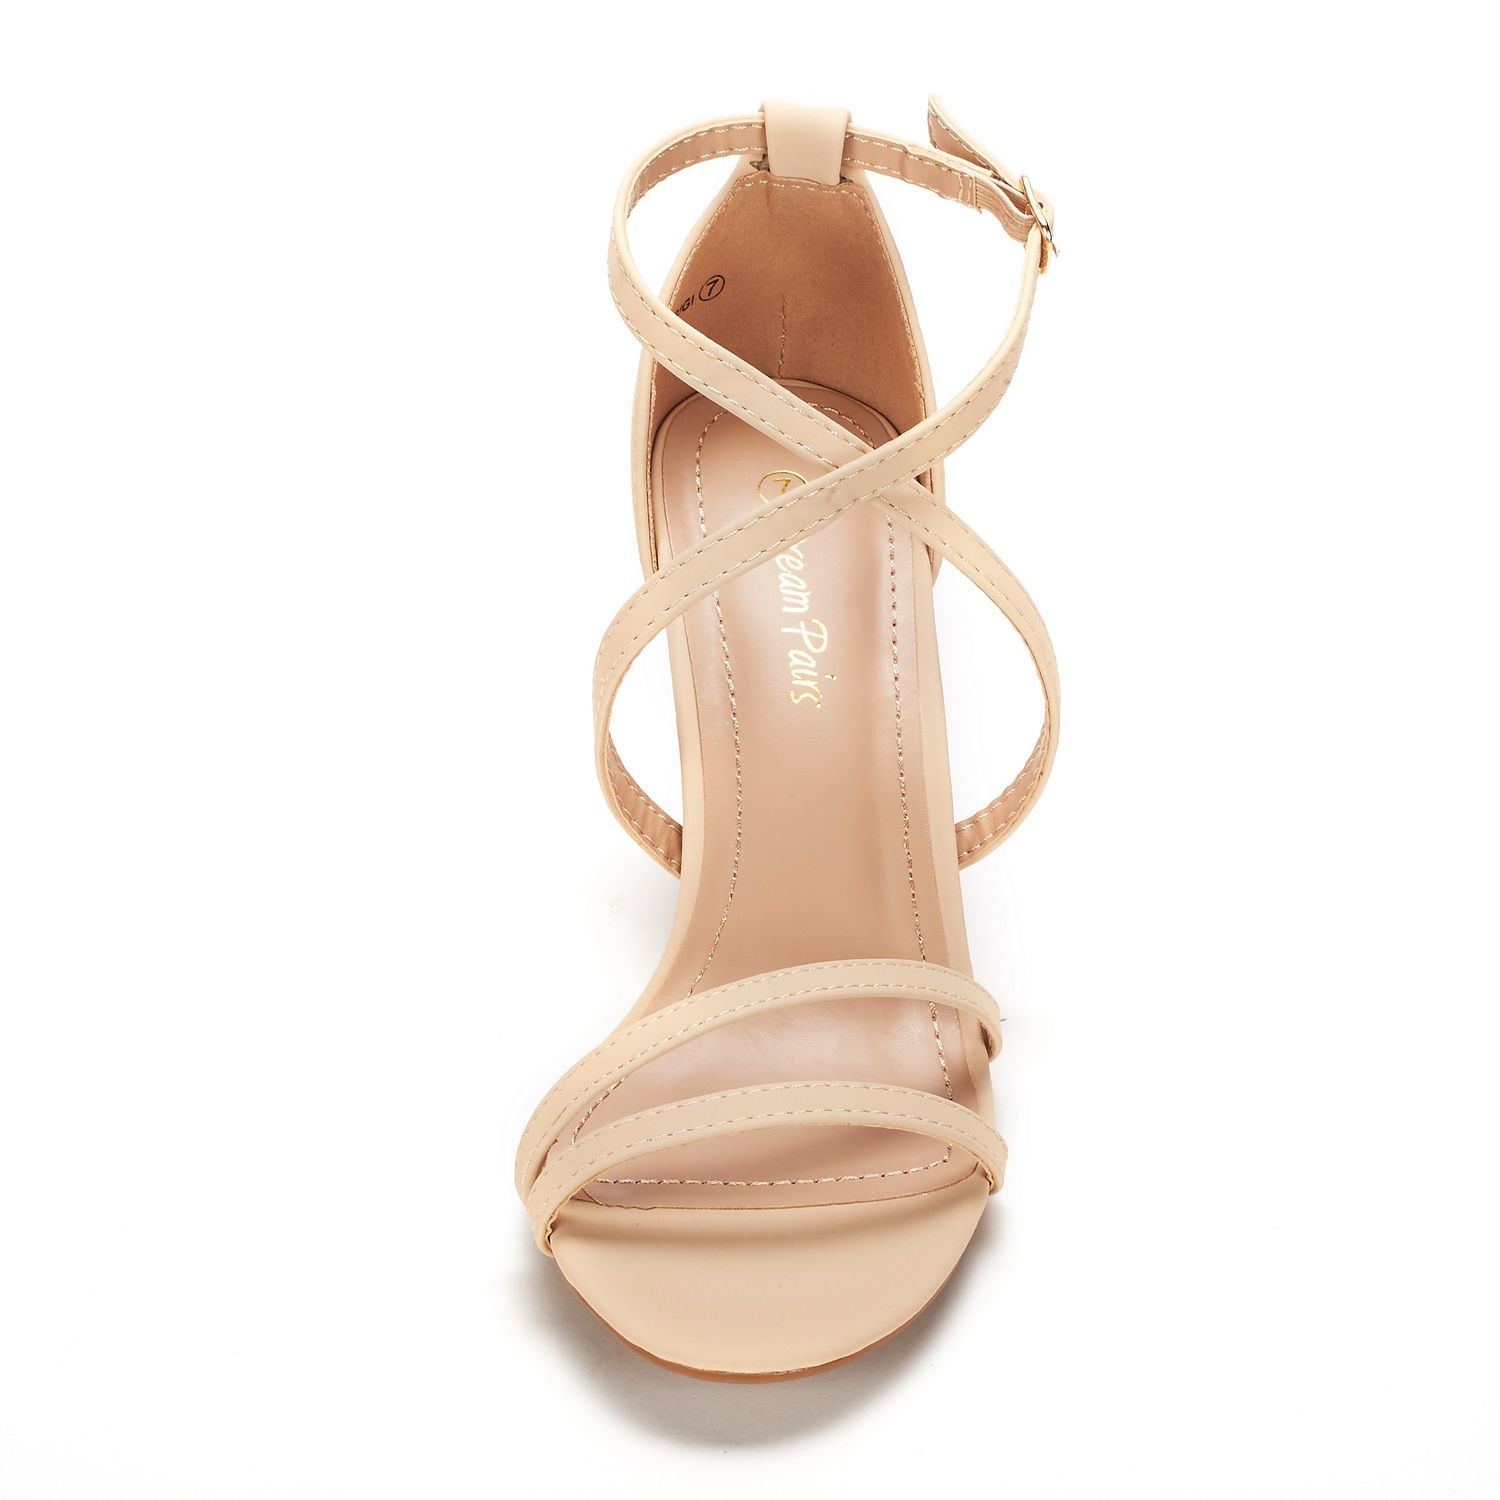 DREAM-PAIRS-Women-039-s-Ankle-Strap-High-Heel-Sandals-Dress-Shoes-Wedding-Party thumbnail 35